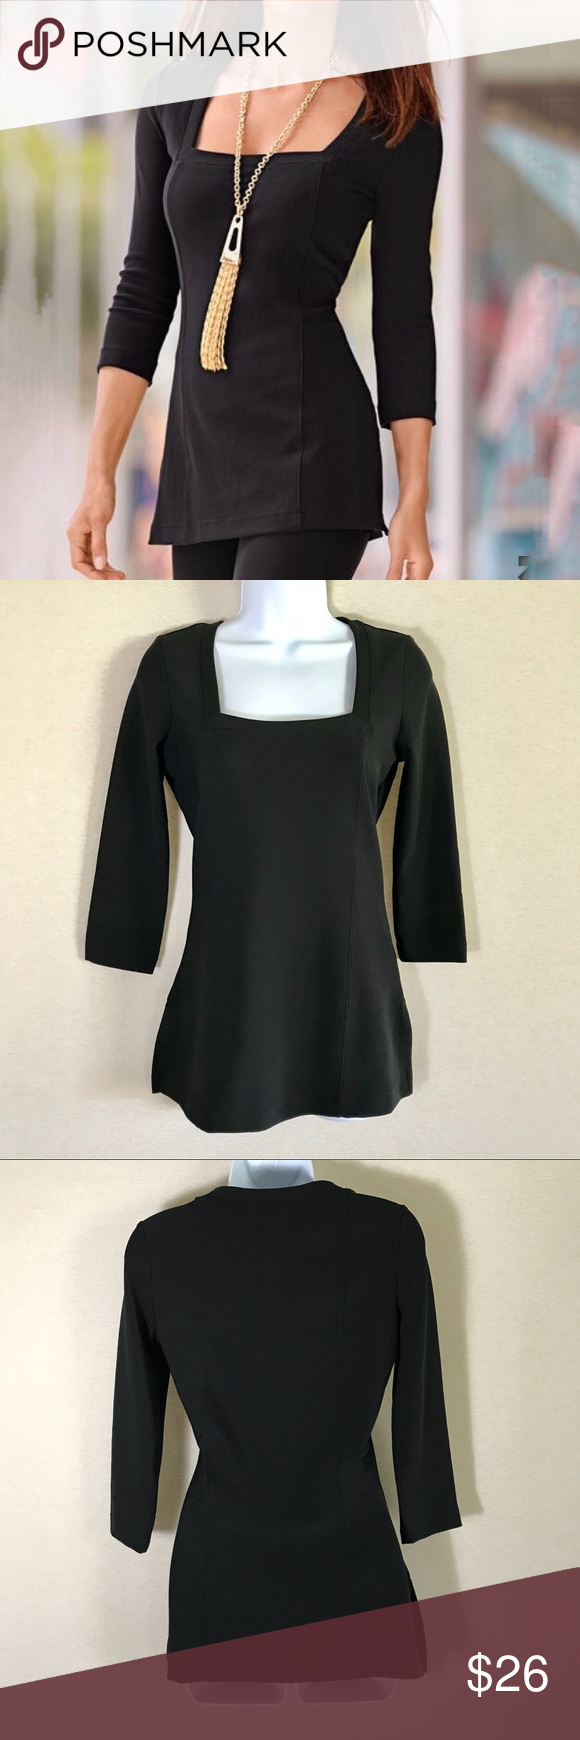 30a9193a345 👗Boston Proper Travel Square Neck Tunic Top XS This is a pretty, wrinkle  resistant sexy tunic with 3/4 sleeves. It is great for travel and is NWOT.